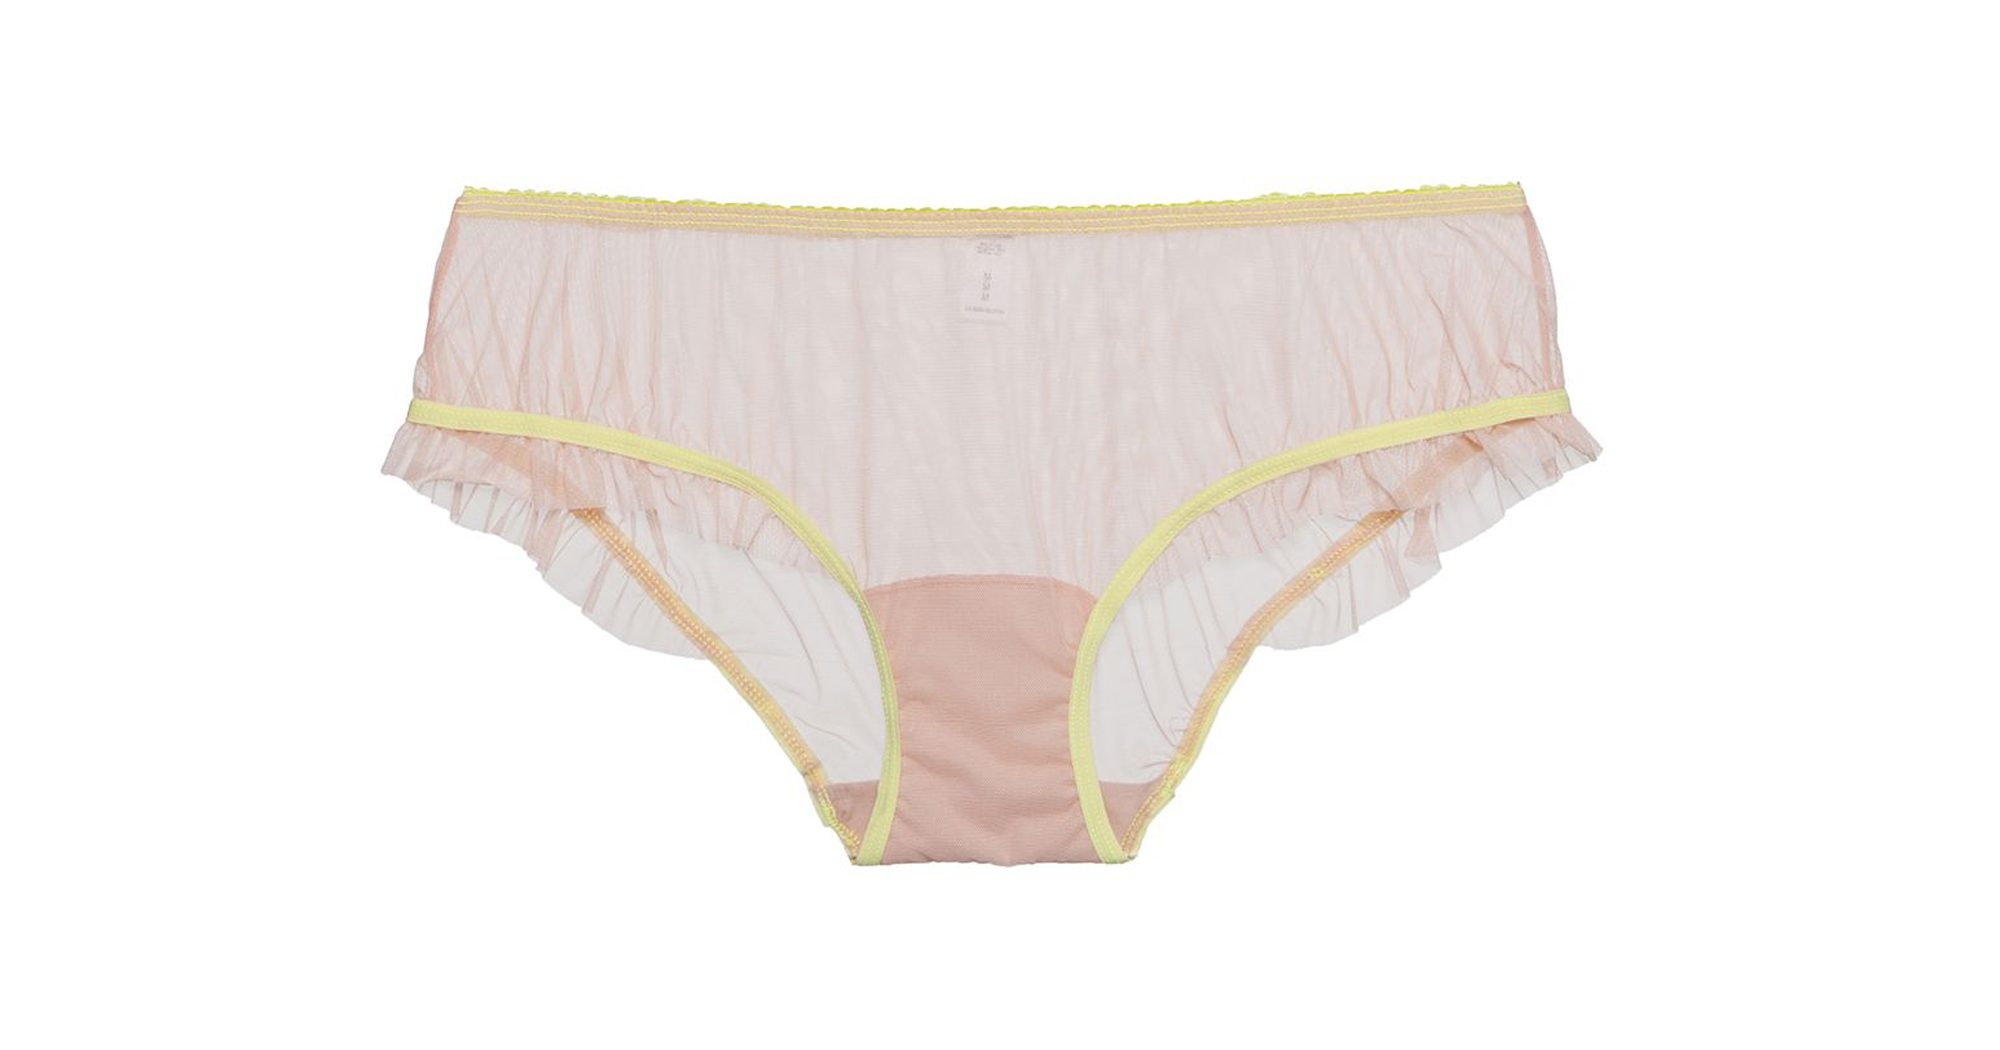 Visible Panty Lines Full Back Panties Lace Underwear